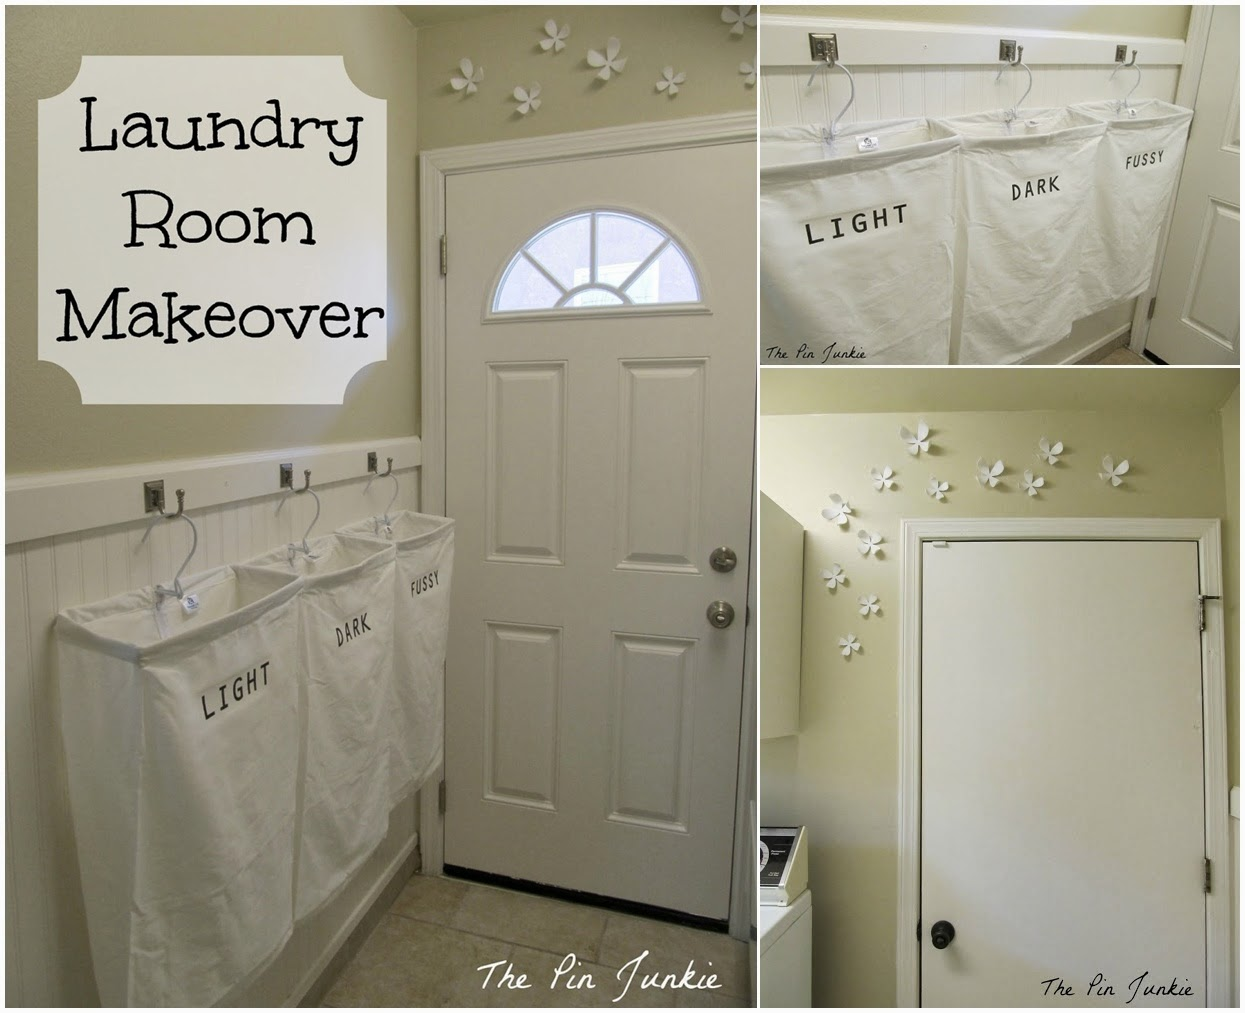 Diy laundry room makeover diy craft projects for Room makeover